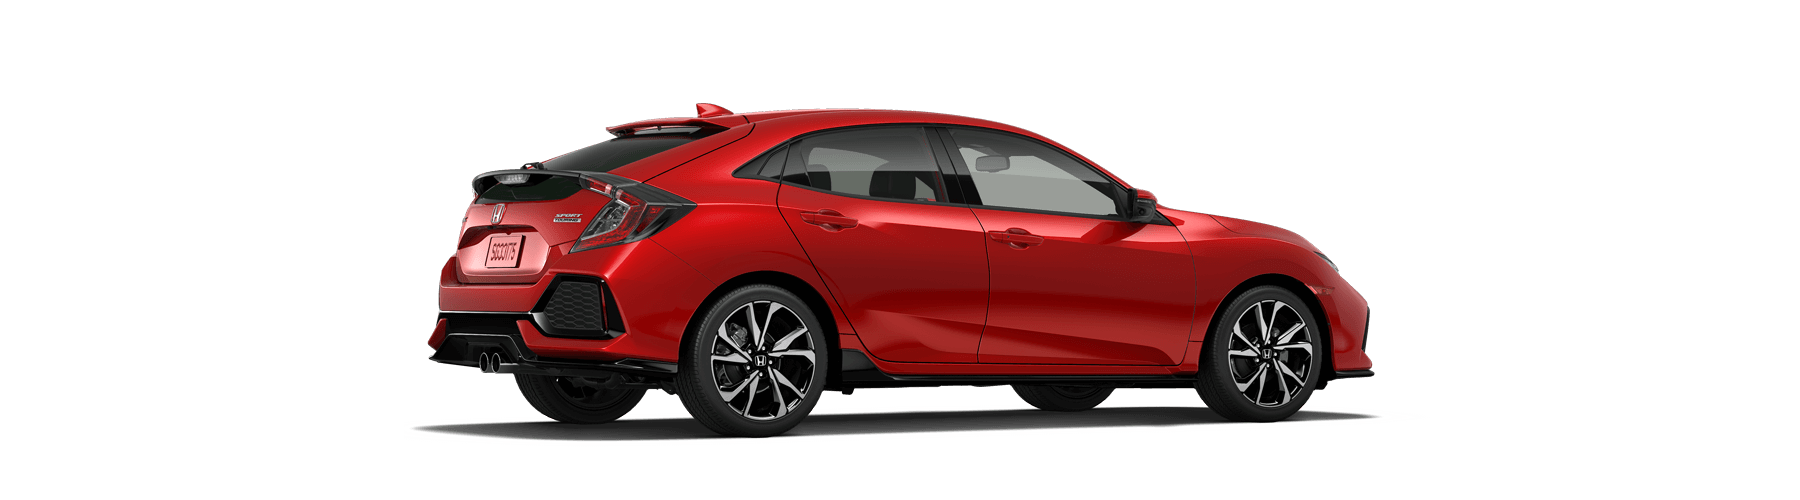 2019 Honda Civic Hatchback Rear Angle